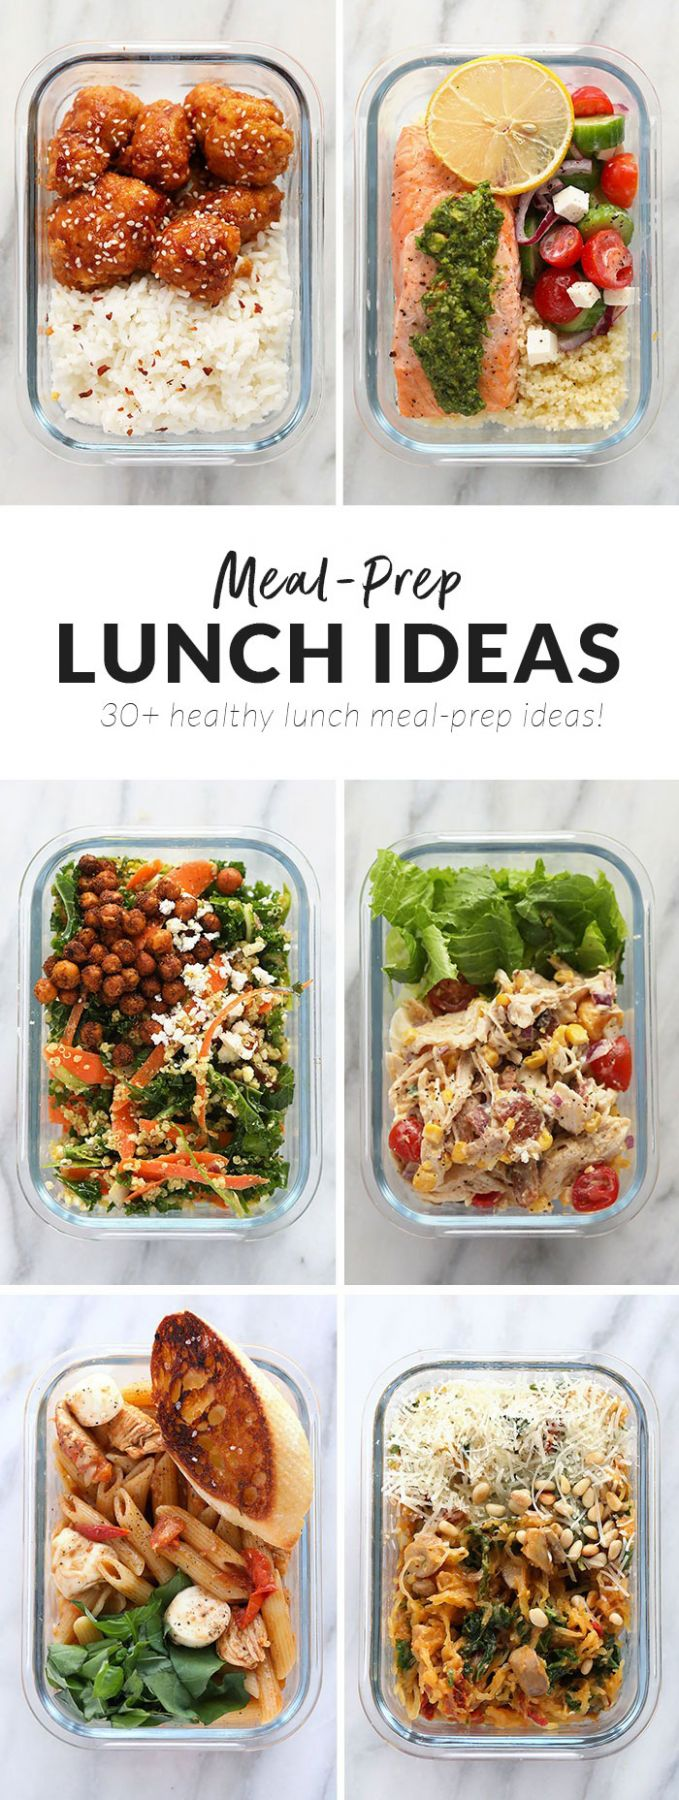 Delicious Healthy Lunch Ideas (12+ Lunch Meal Prep Ideas) - Fit ..